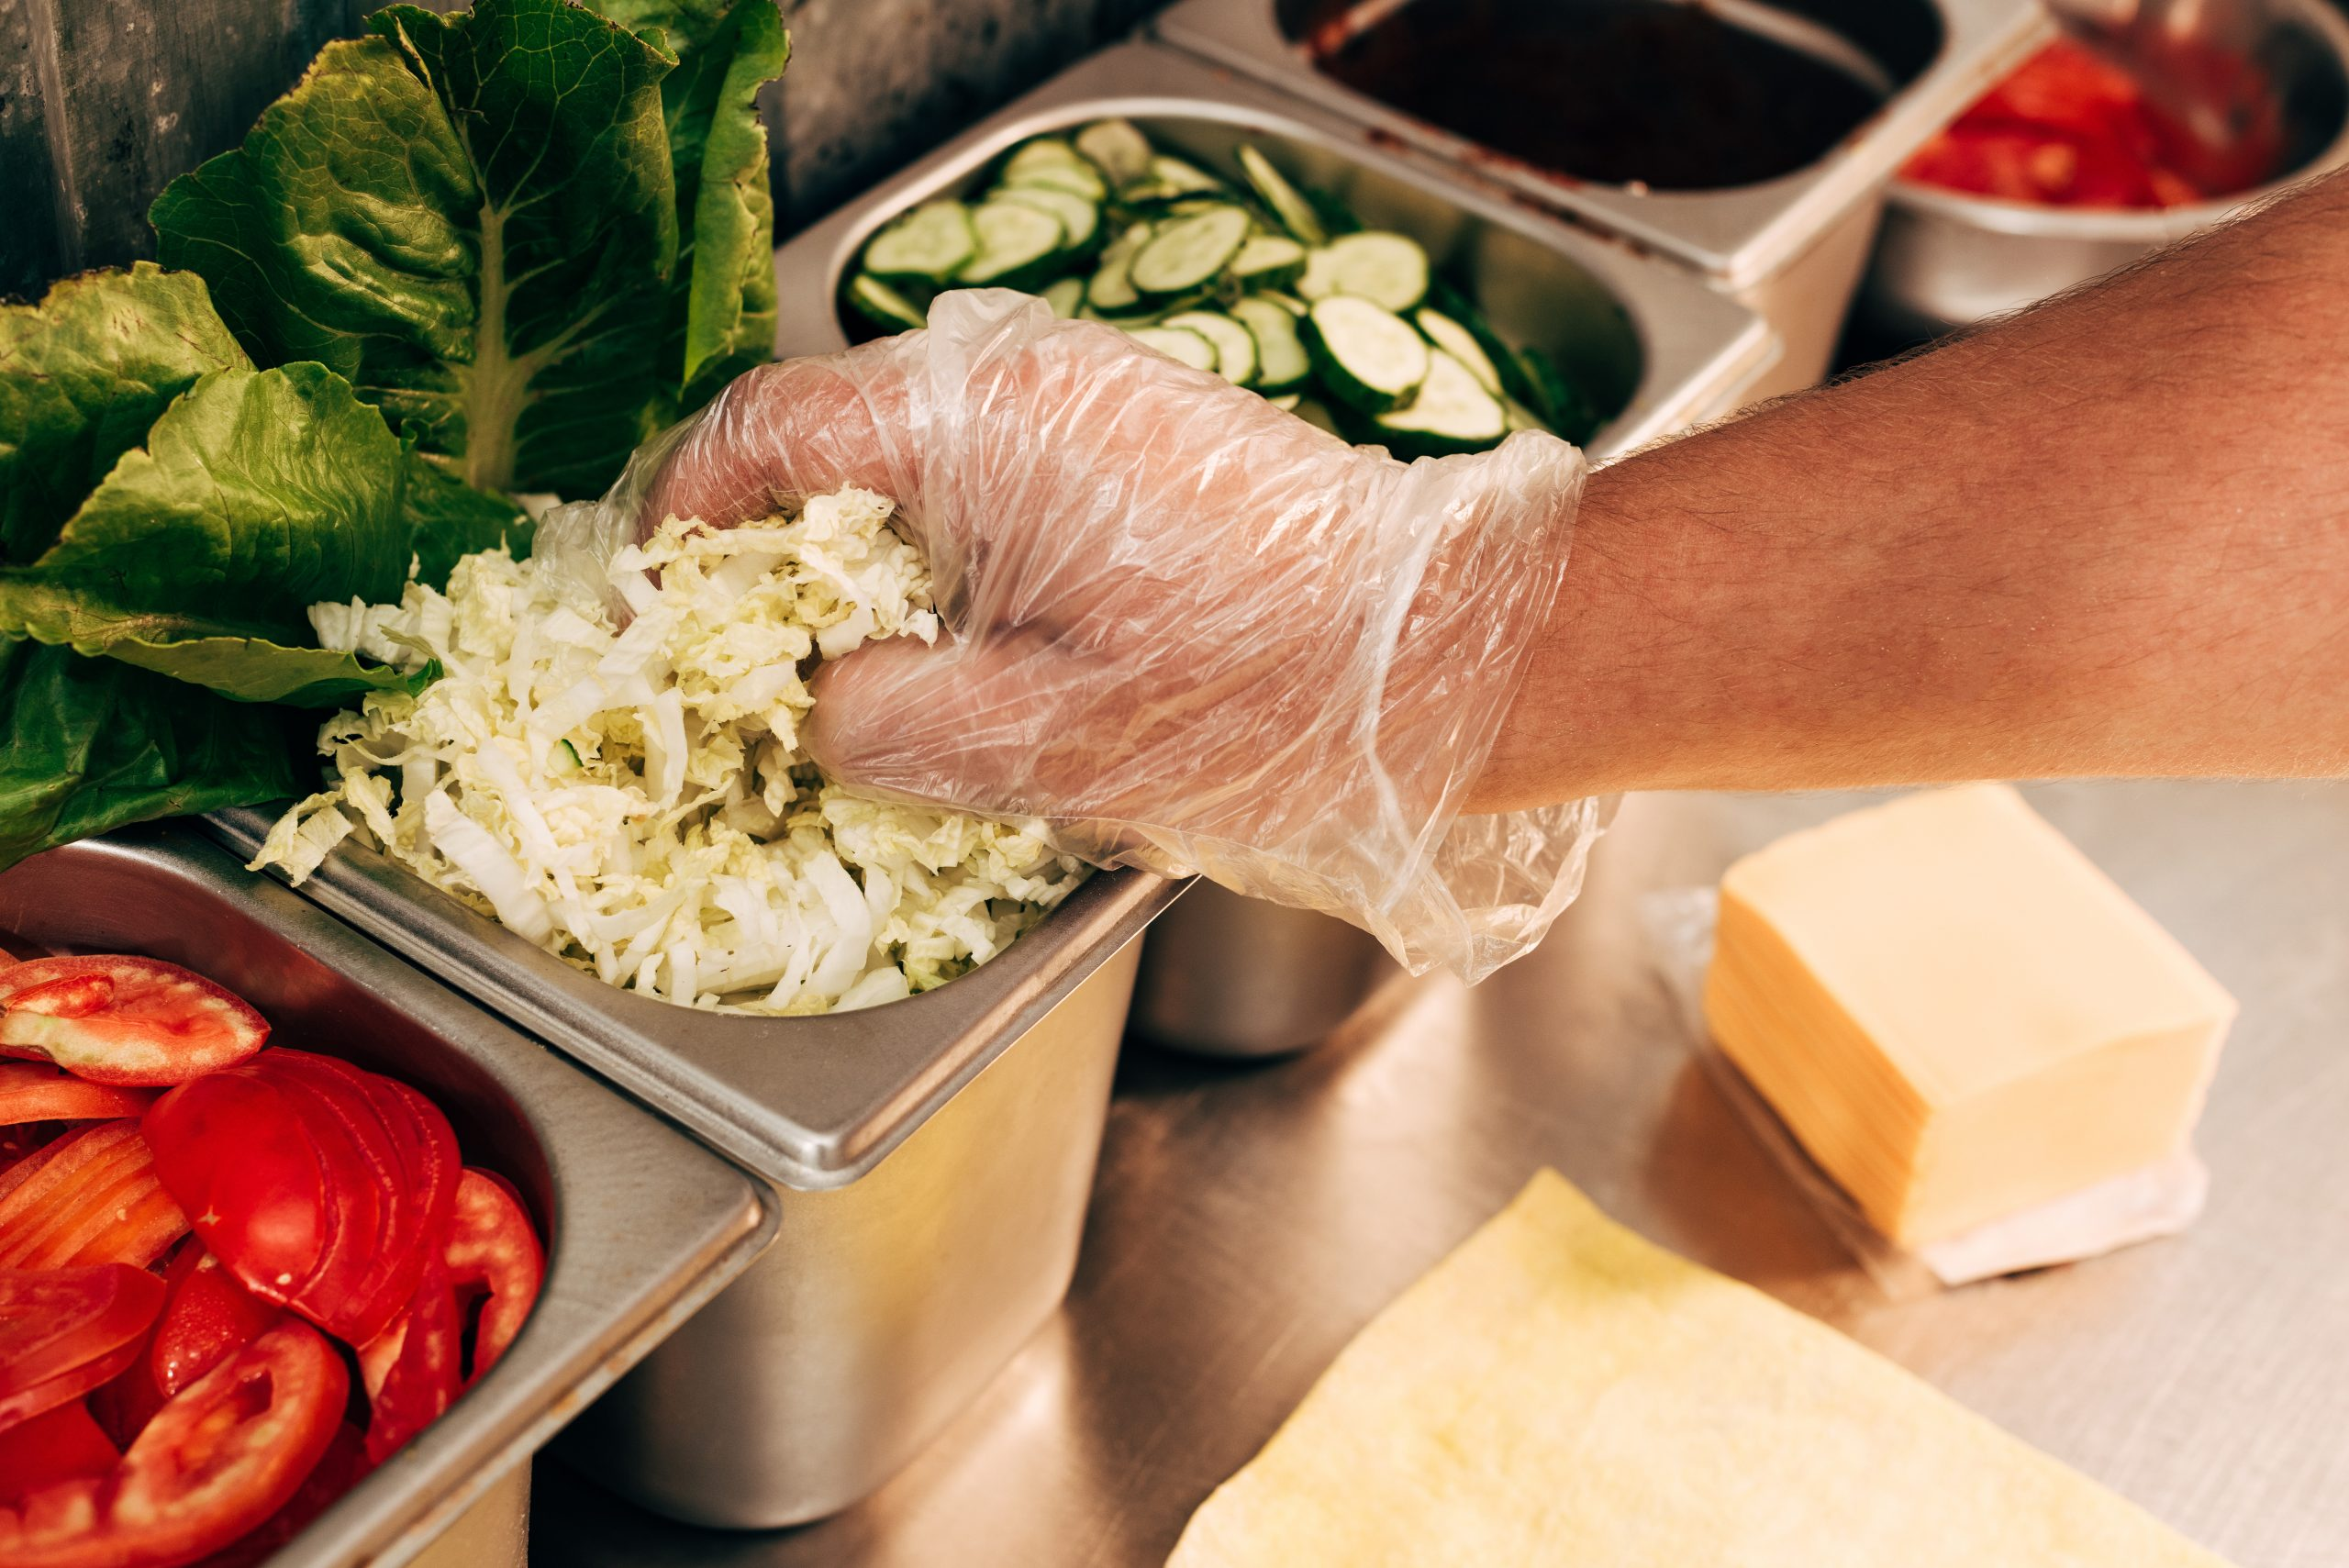 Partial View Of Cook In Glove Holding Cut Lettuce At Workplace